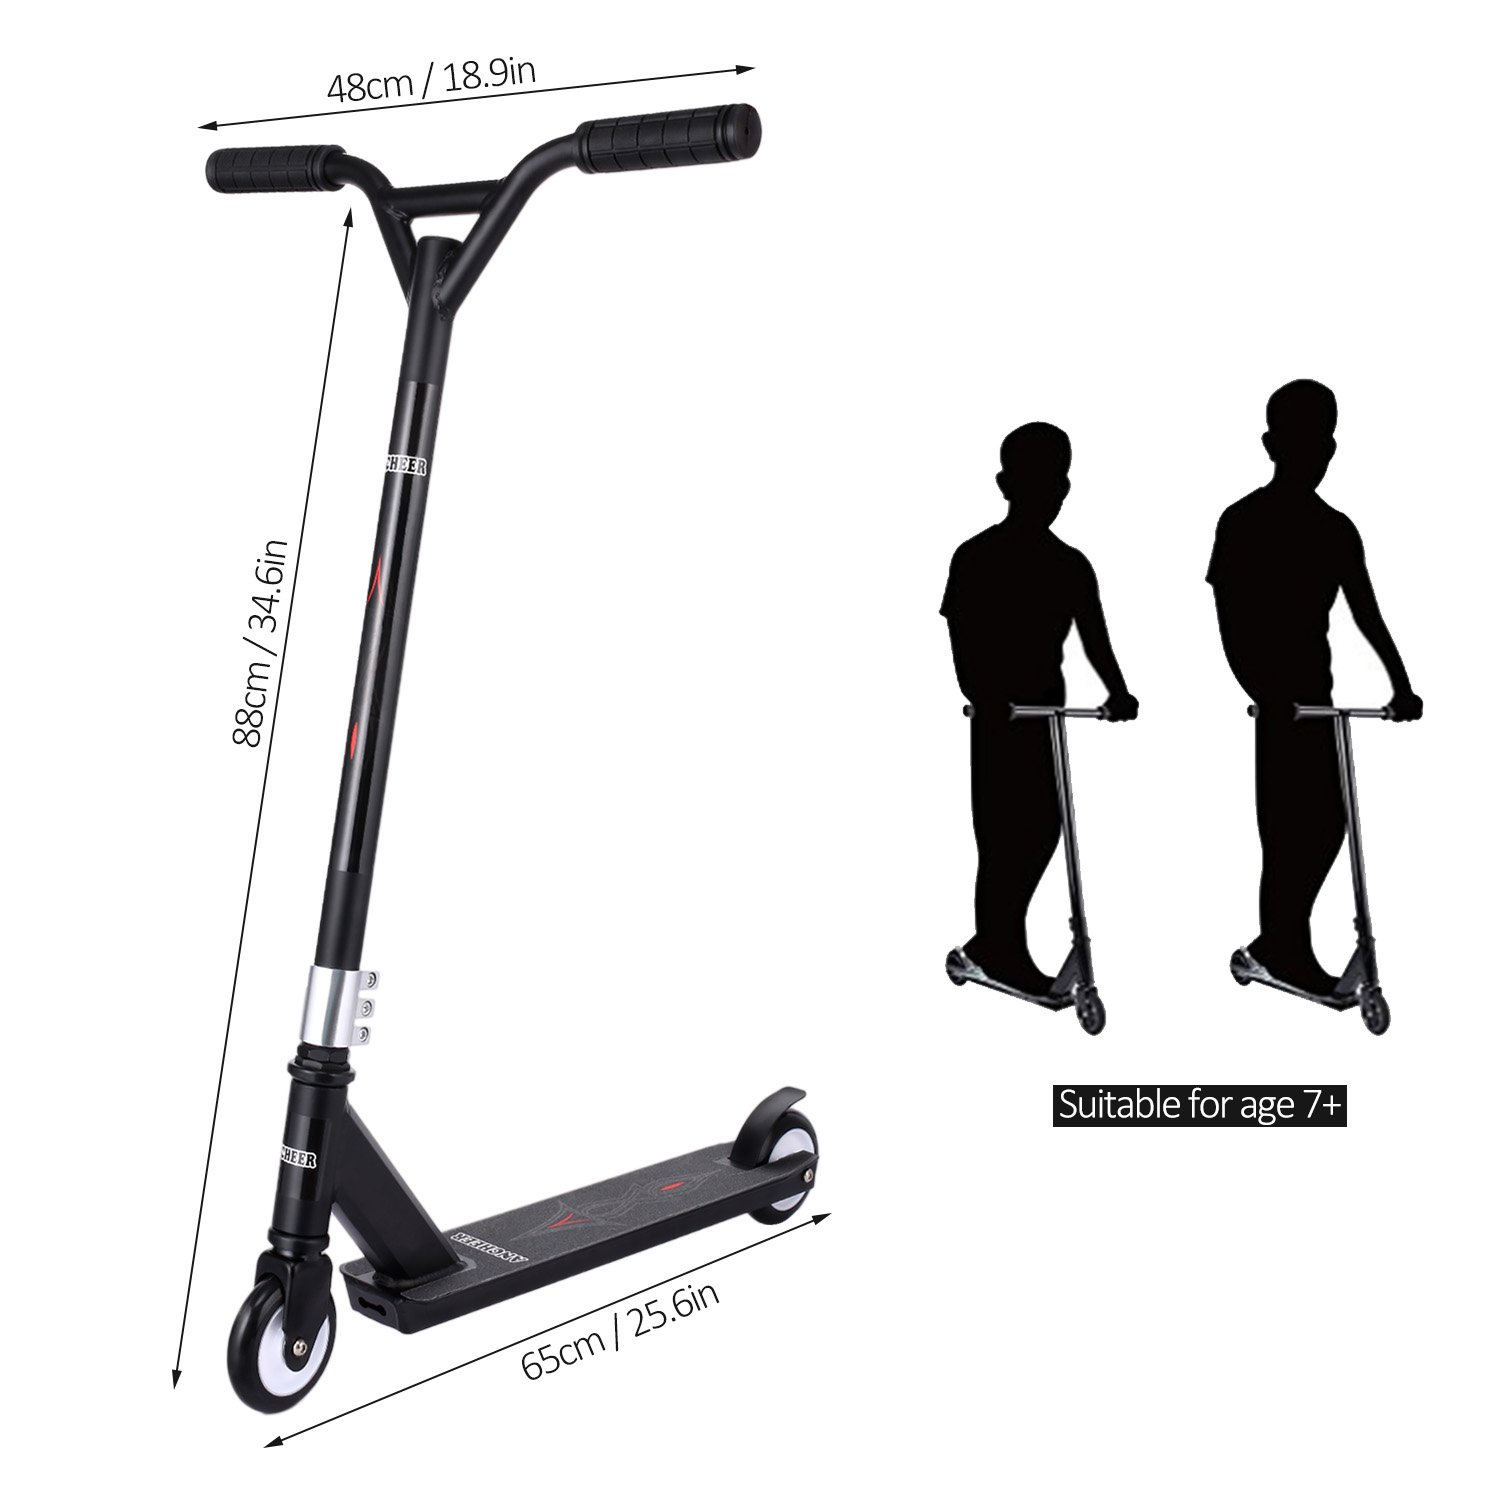 Amazon.com: ANCHEER I100 Stunt Scooter para edad 7 +, ruedas ...